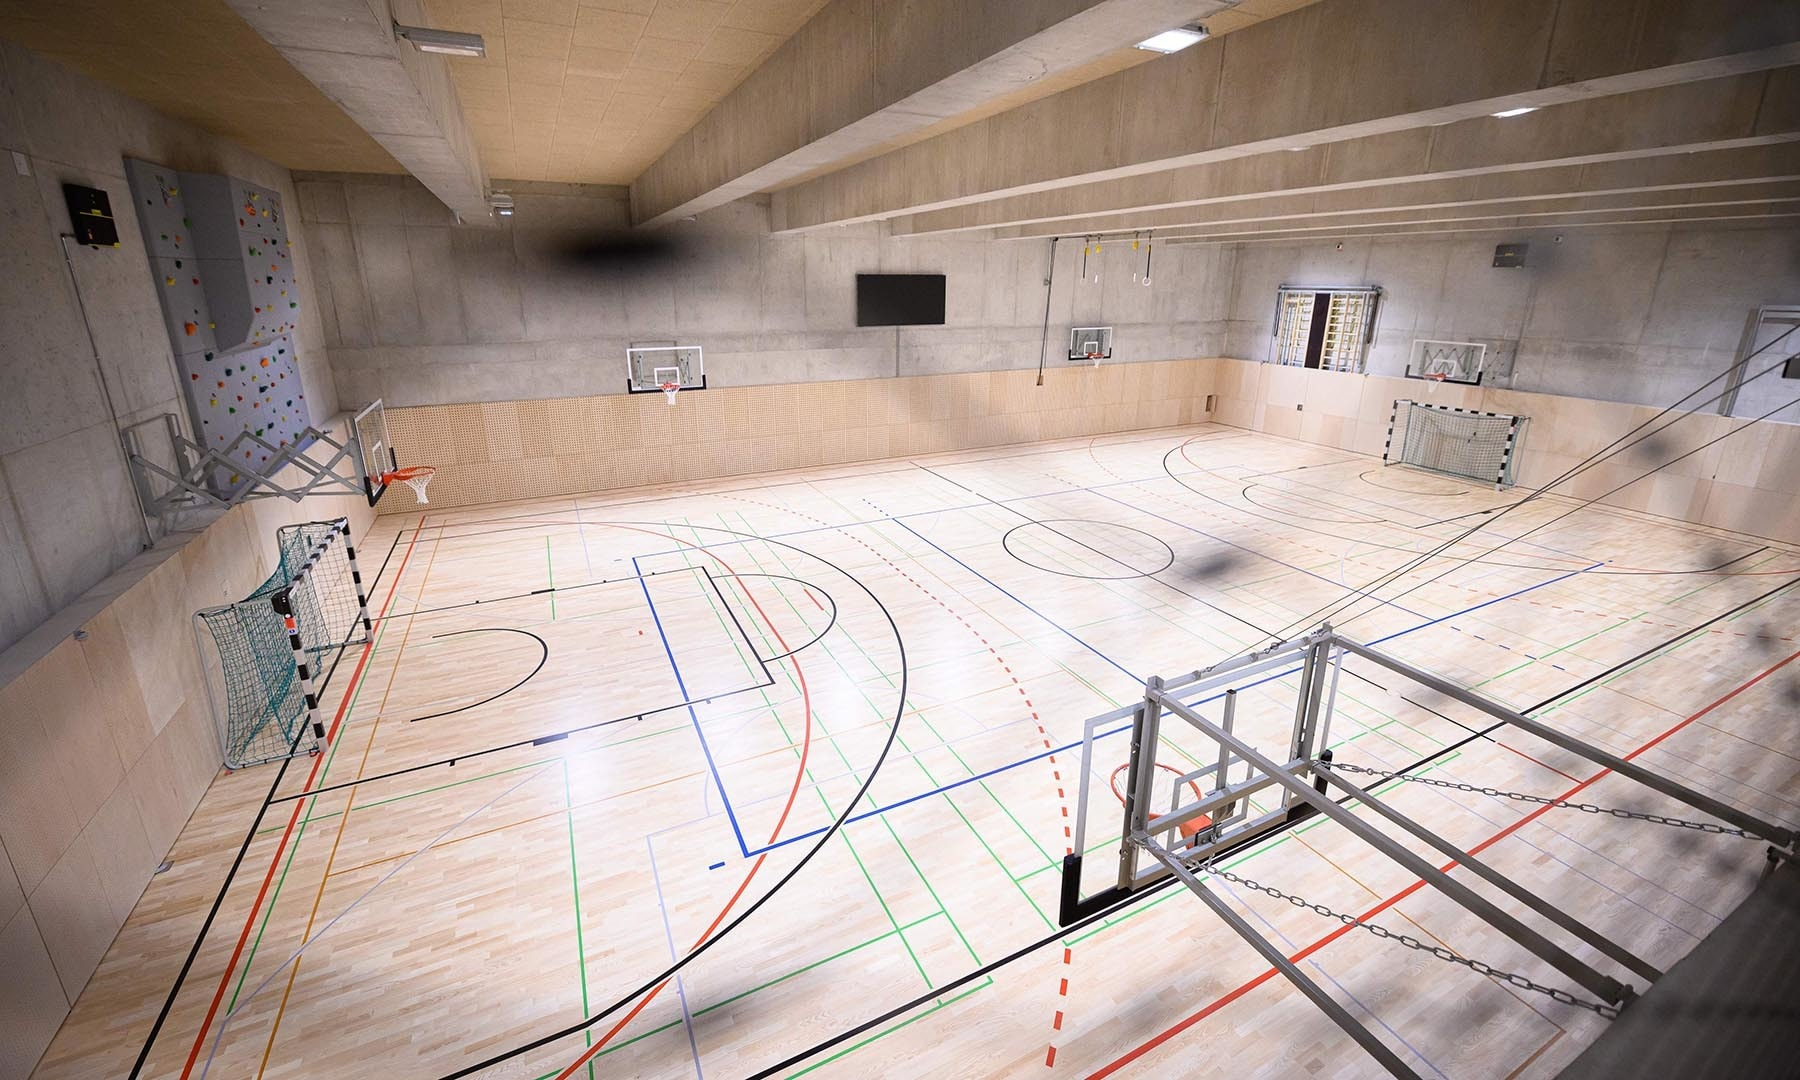 A general view of a sports hall inside Slovenia's first mosque is seen in this photo. — AFP